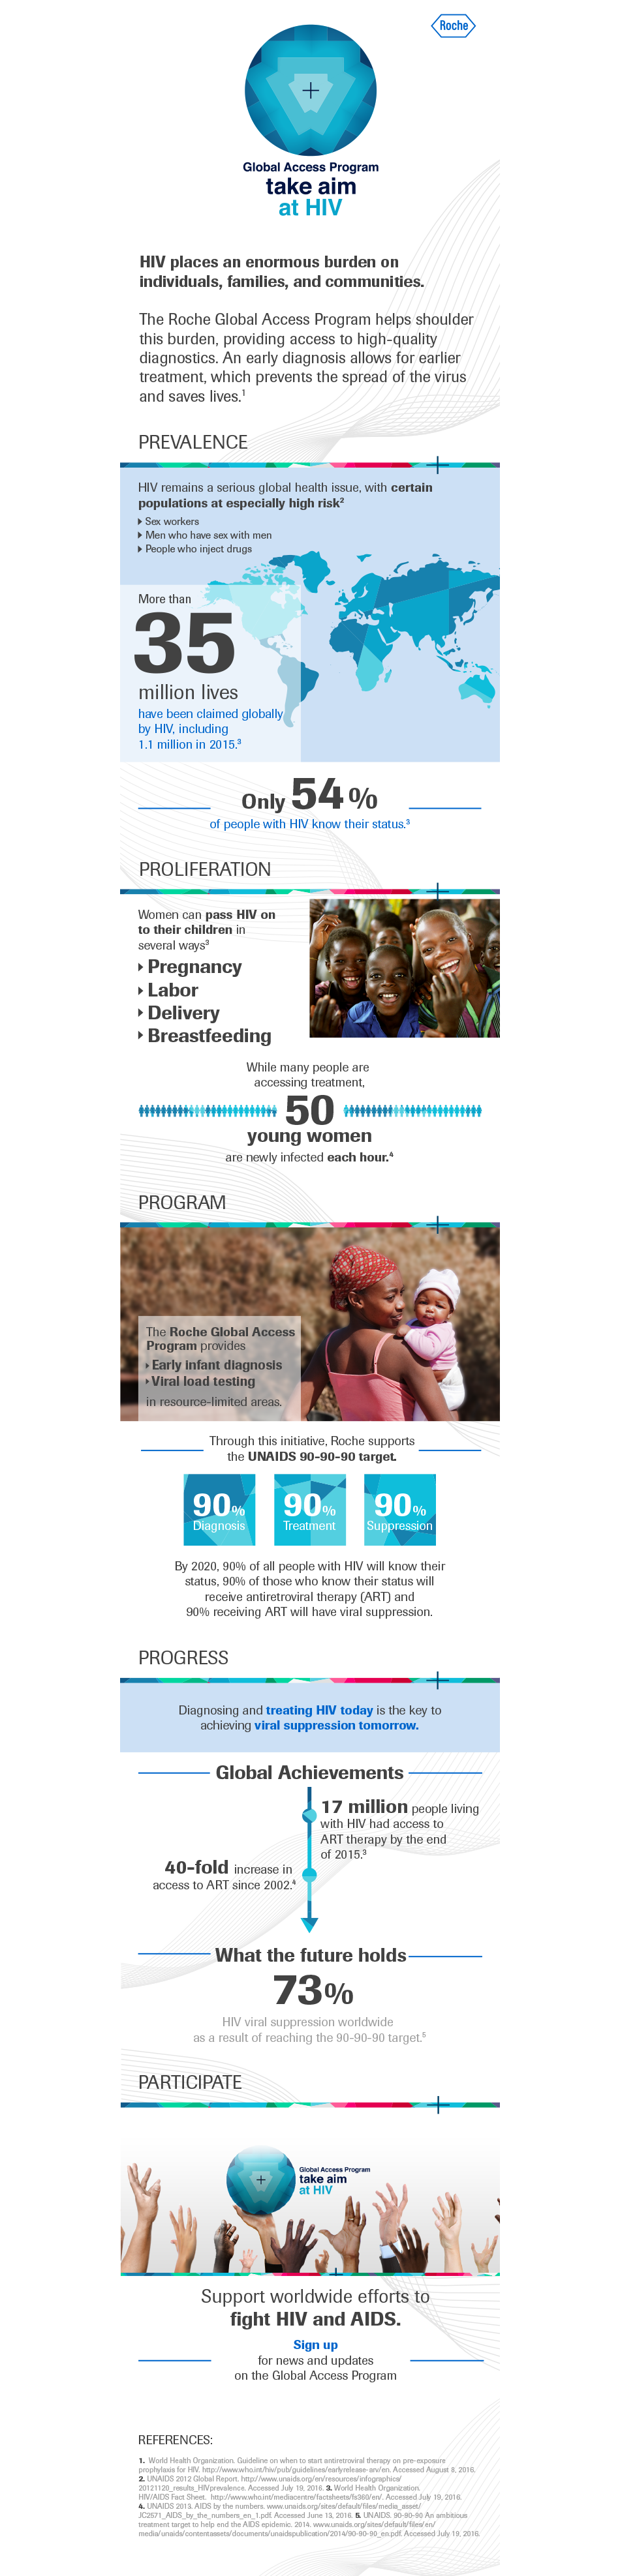 Infographic: Roche Global Access Program - taking aim at HIV